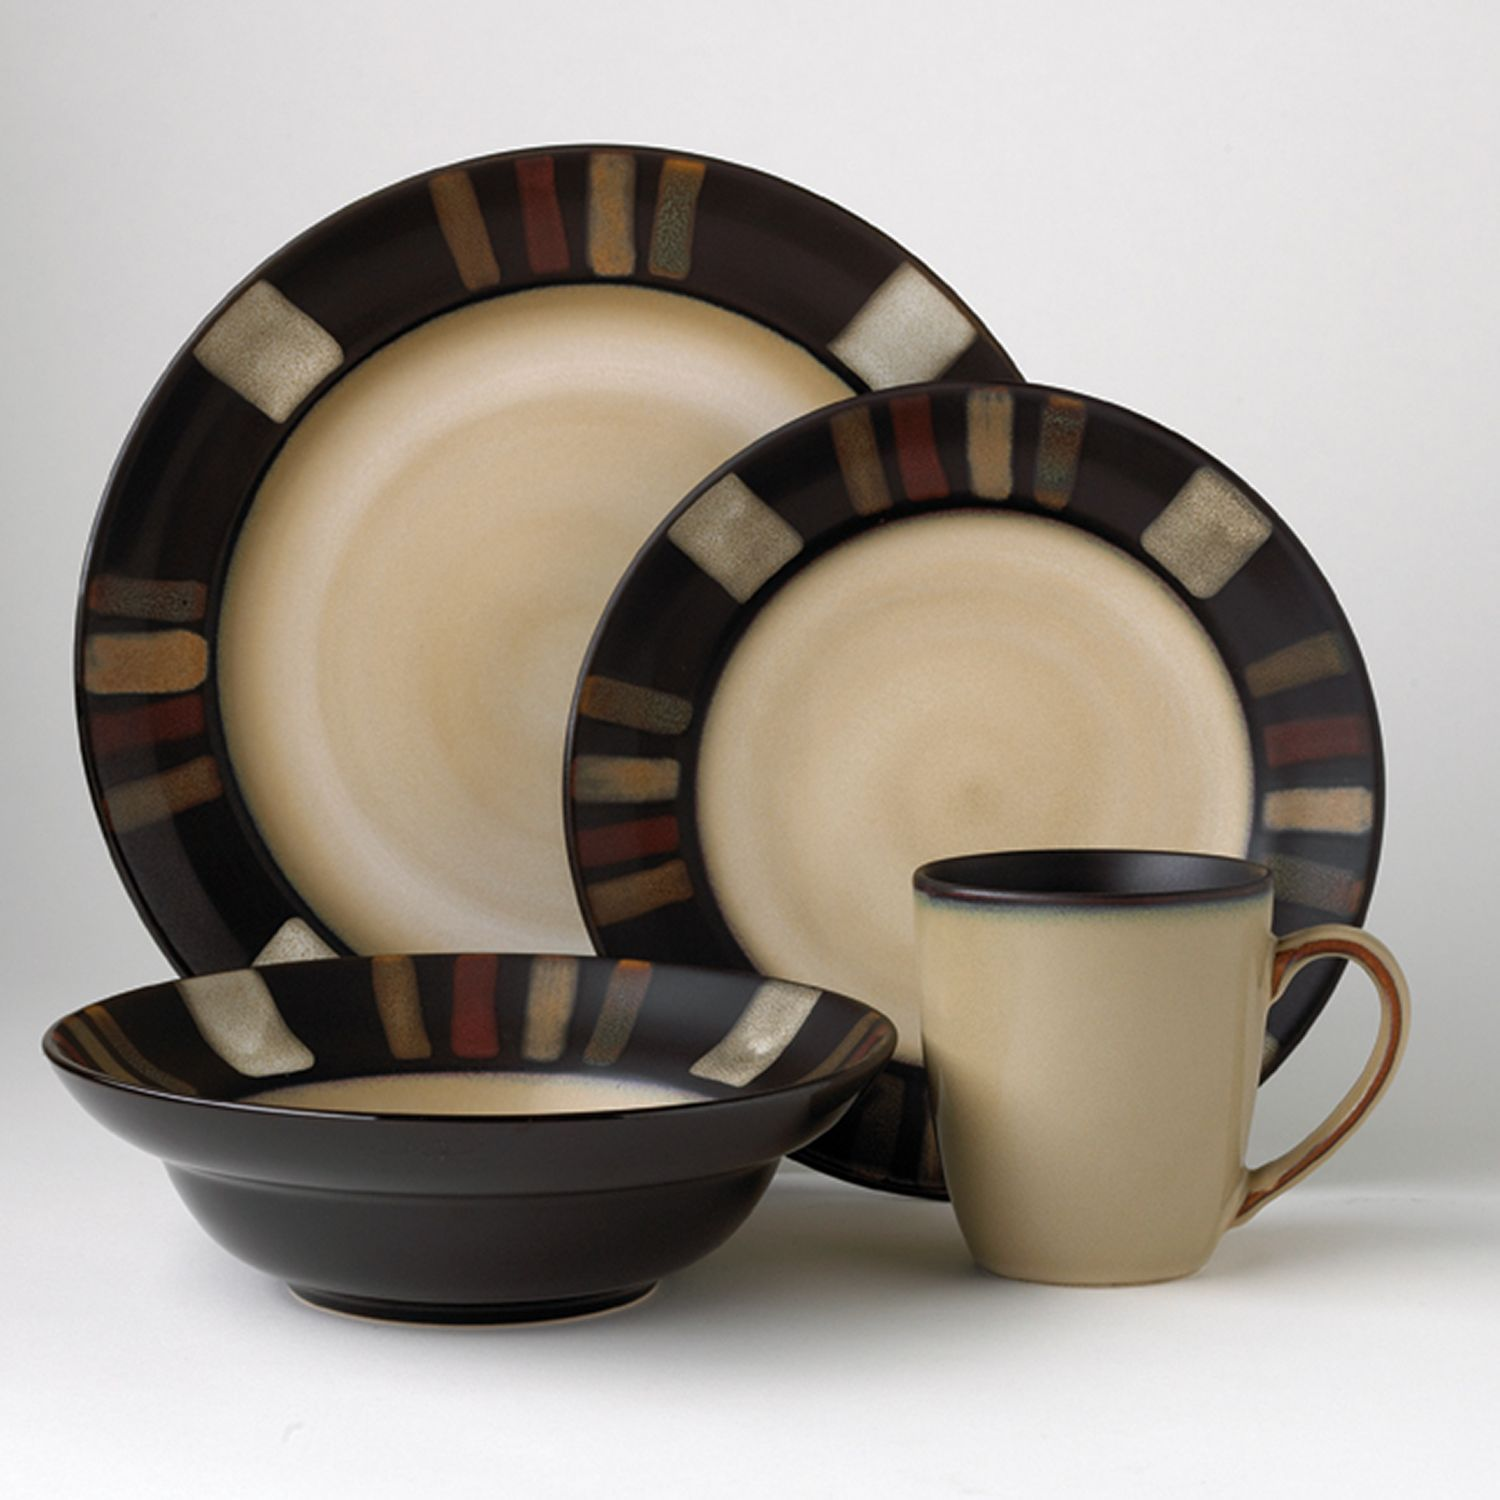 Pfaltzgraff Everyday Tahoe 16-pc. Dinnerware Set & Pfaltzgraff Everyday Galaxy 16-pc. Dinnerware Set | Kohls